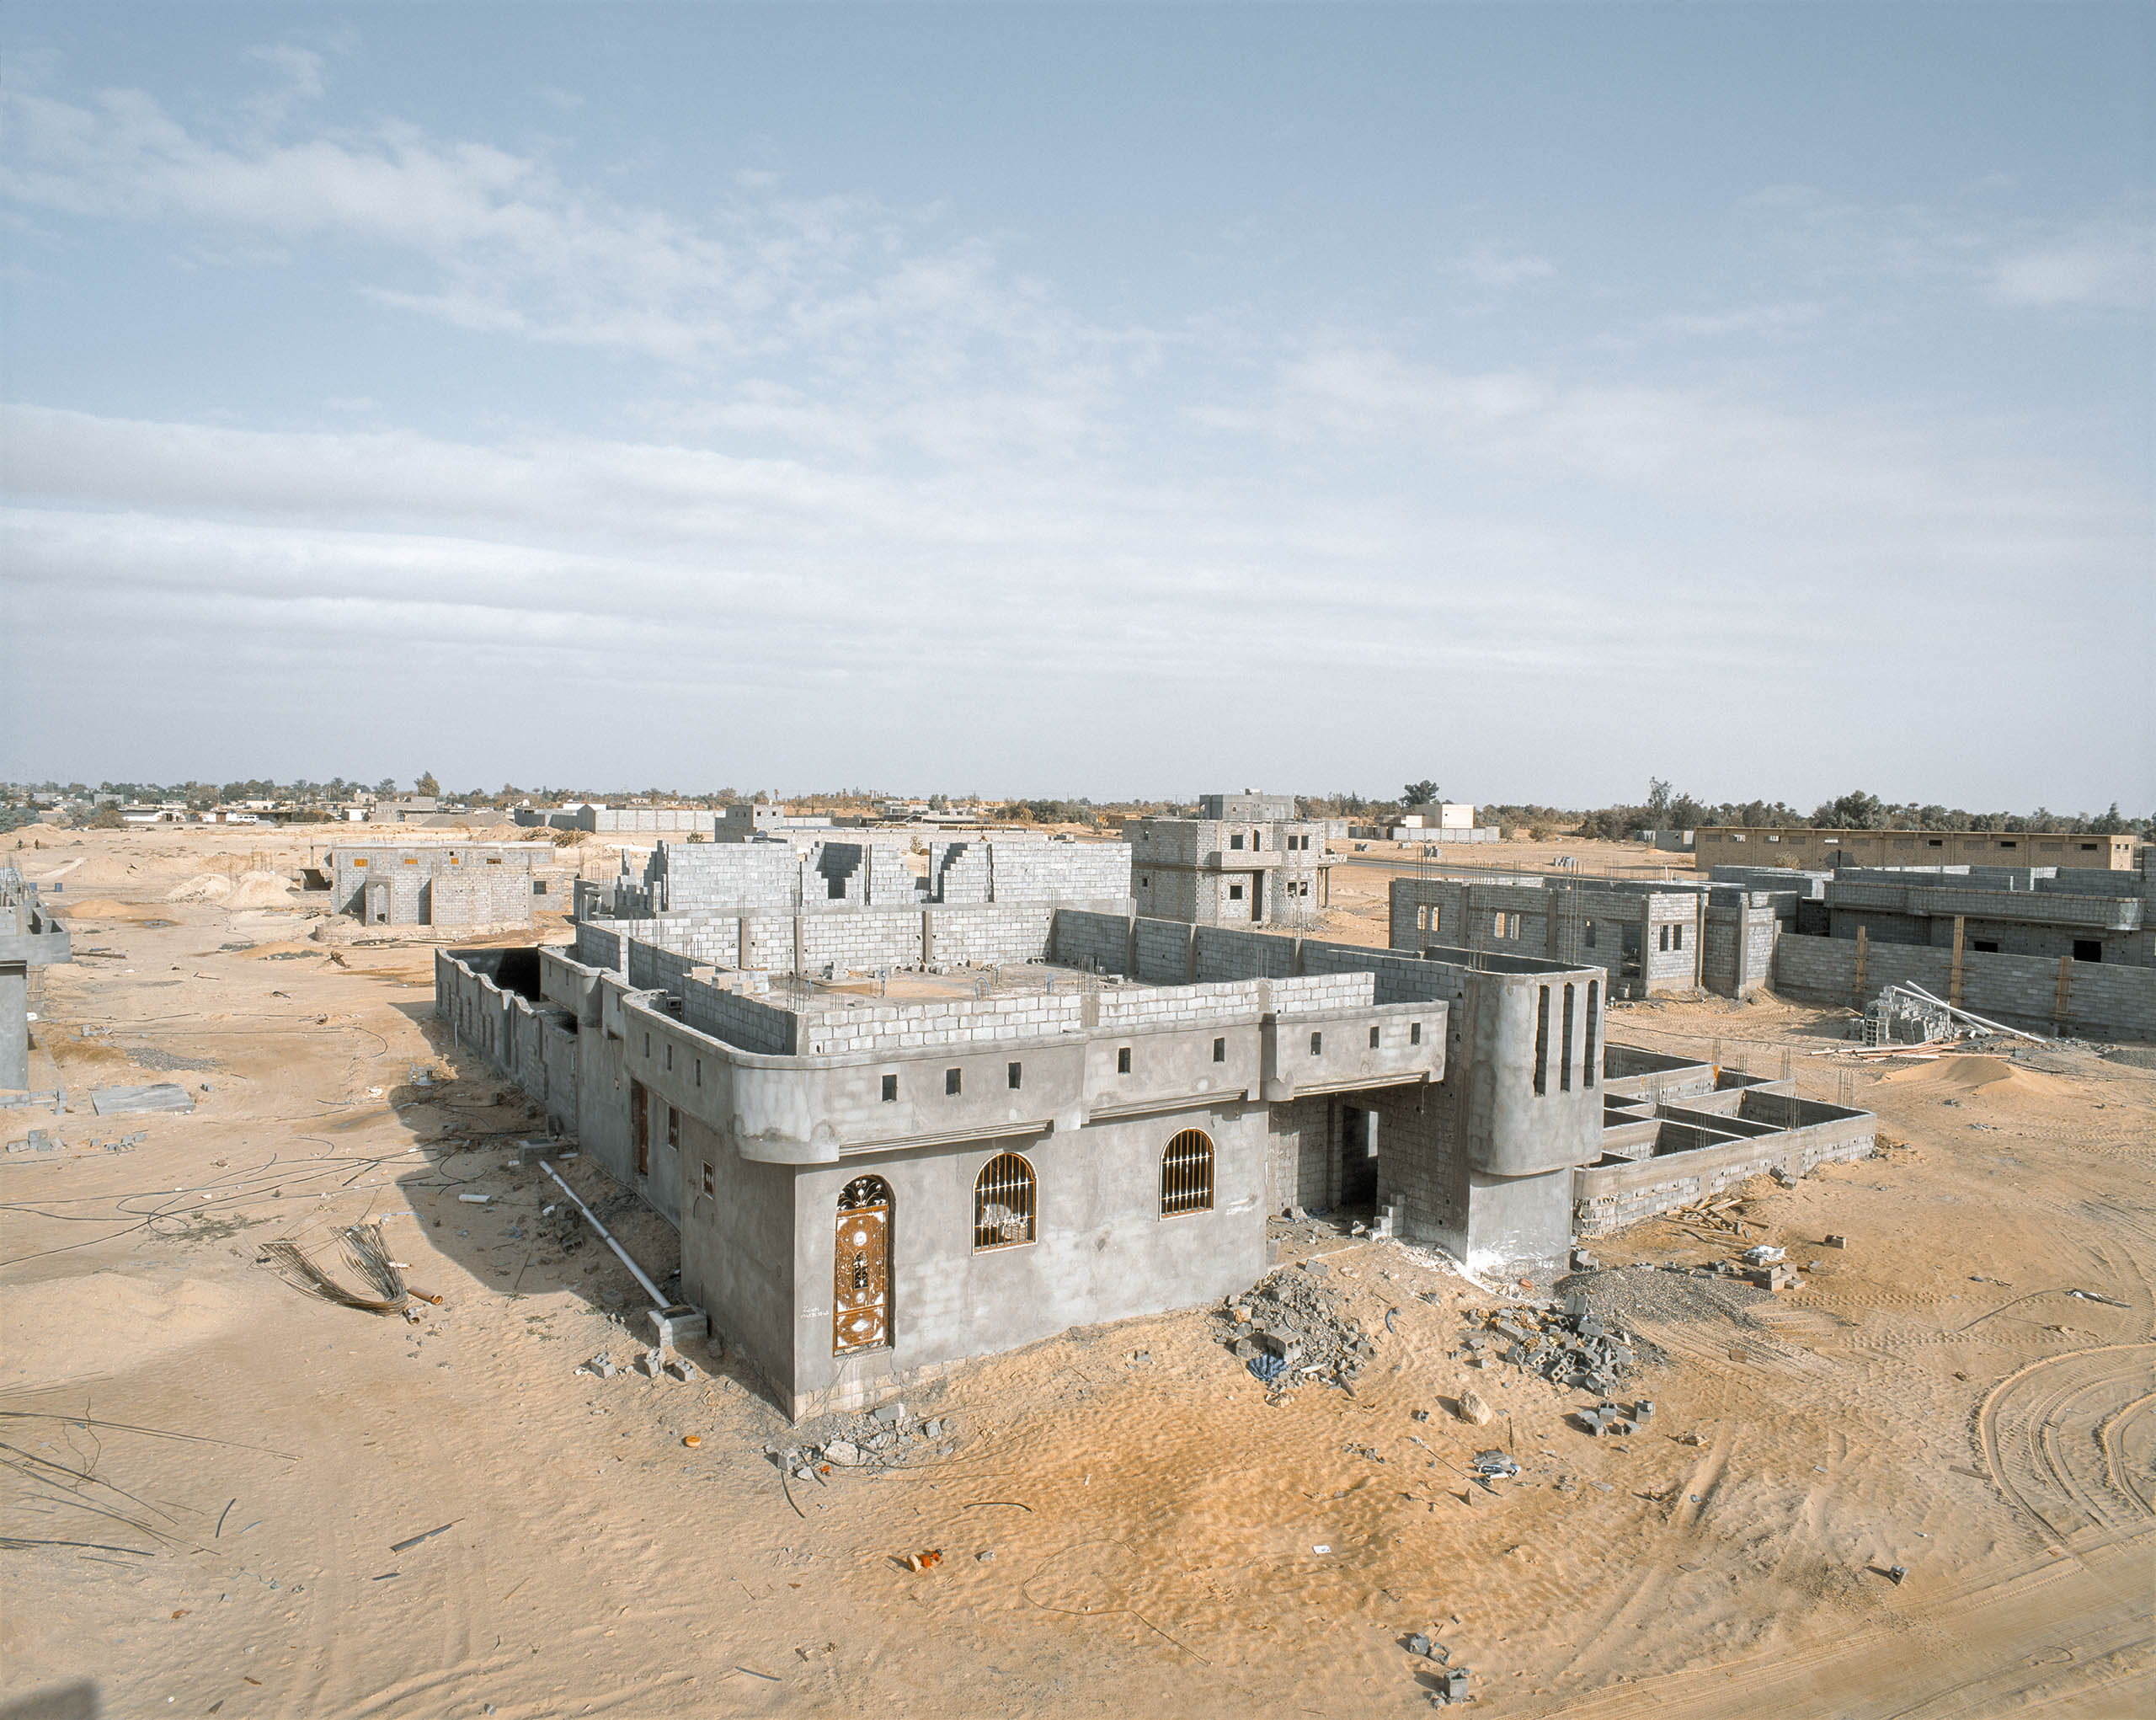 Smugglers have built massive homes in Murzuk, capital of the Tebu tribes, with the proceeds from looting state resources and trafficking. Murzuk, Southern Libya, March 2015.